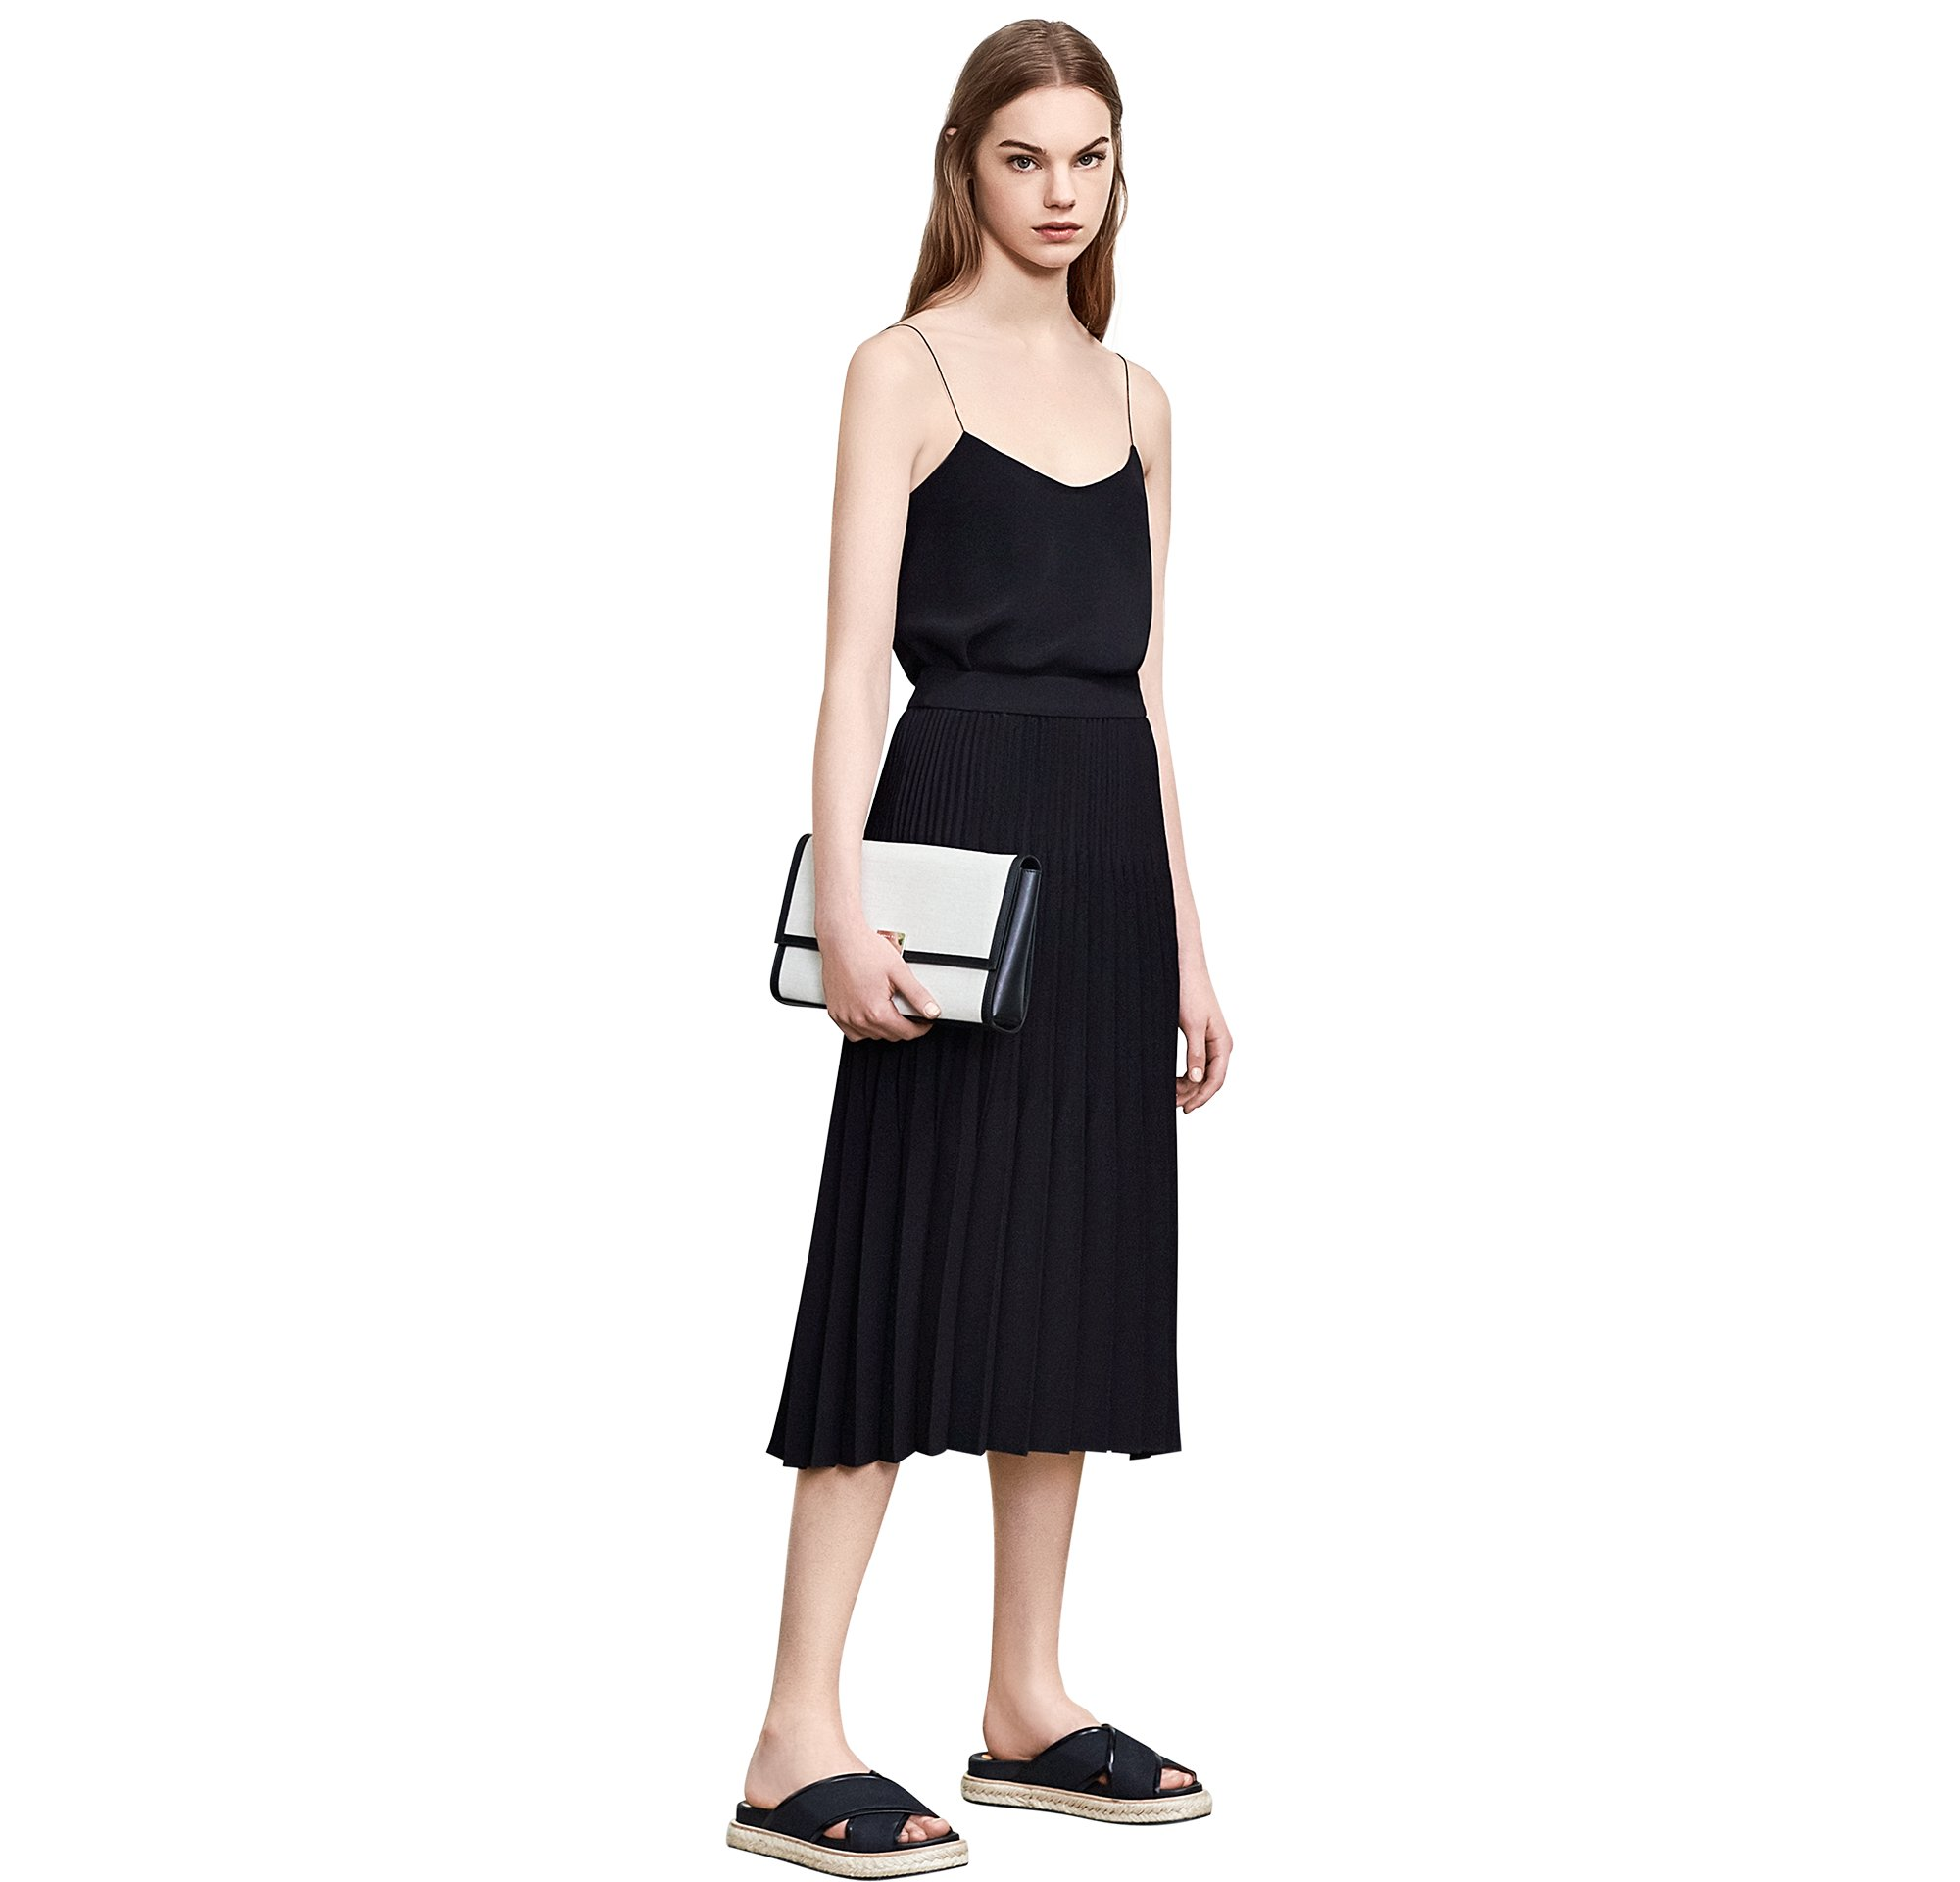 Black top over black skirt with shoes and bag by BOSS